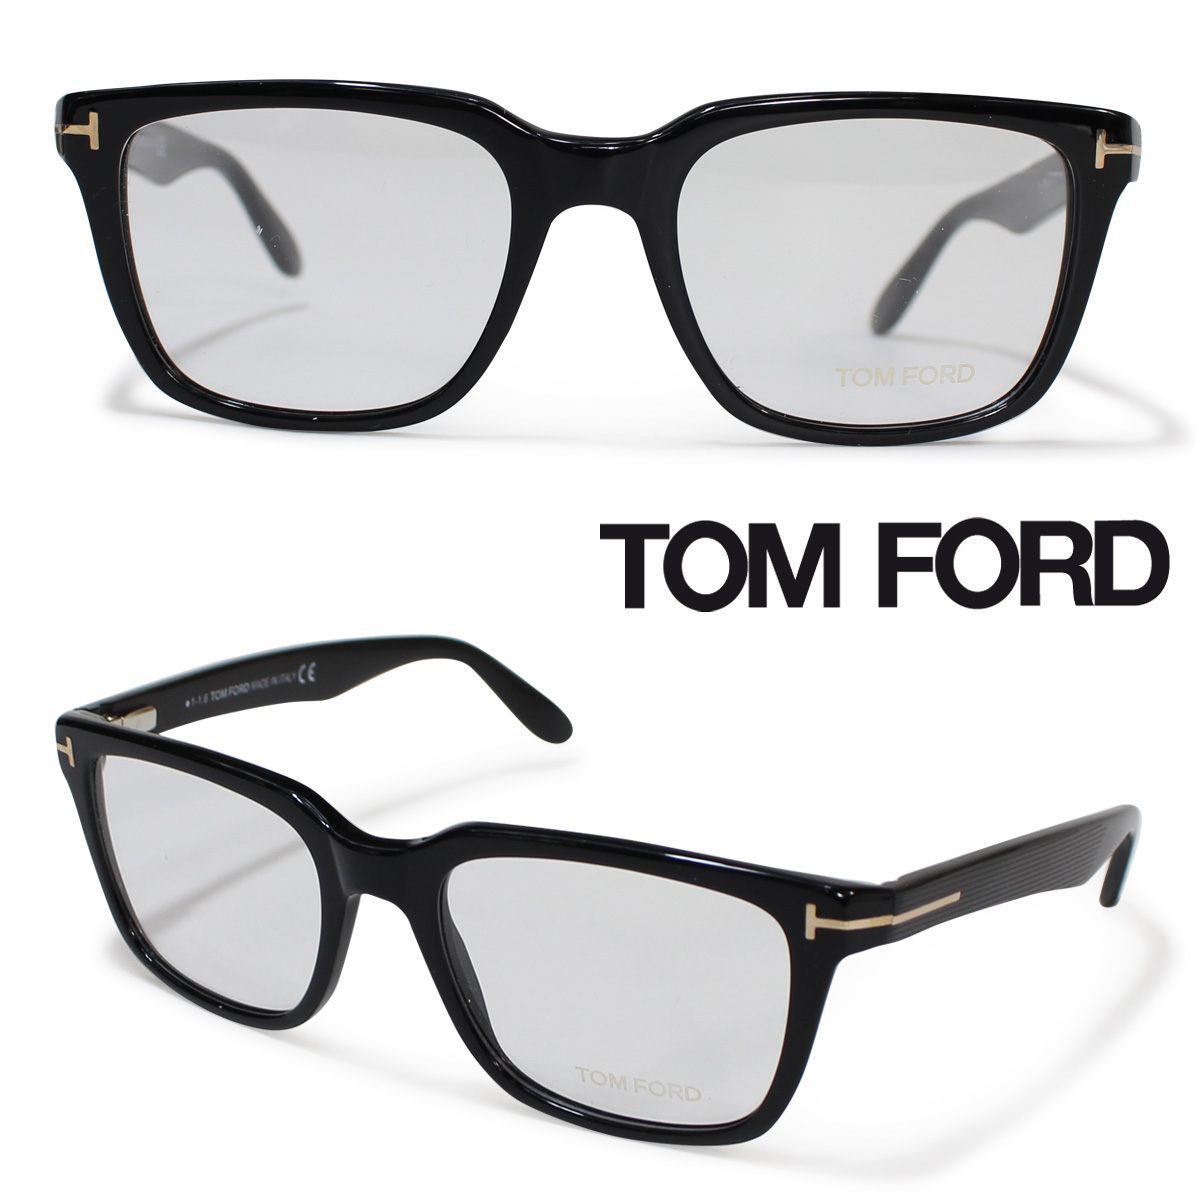 Sugar Online Shop: Tom Ford sunglasses mens Womens TOM FORD eyewear ...